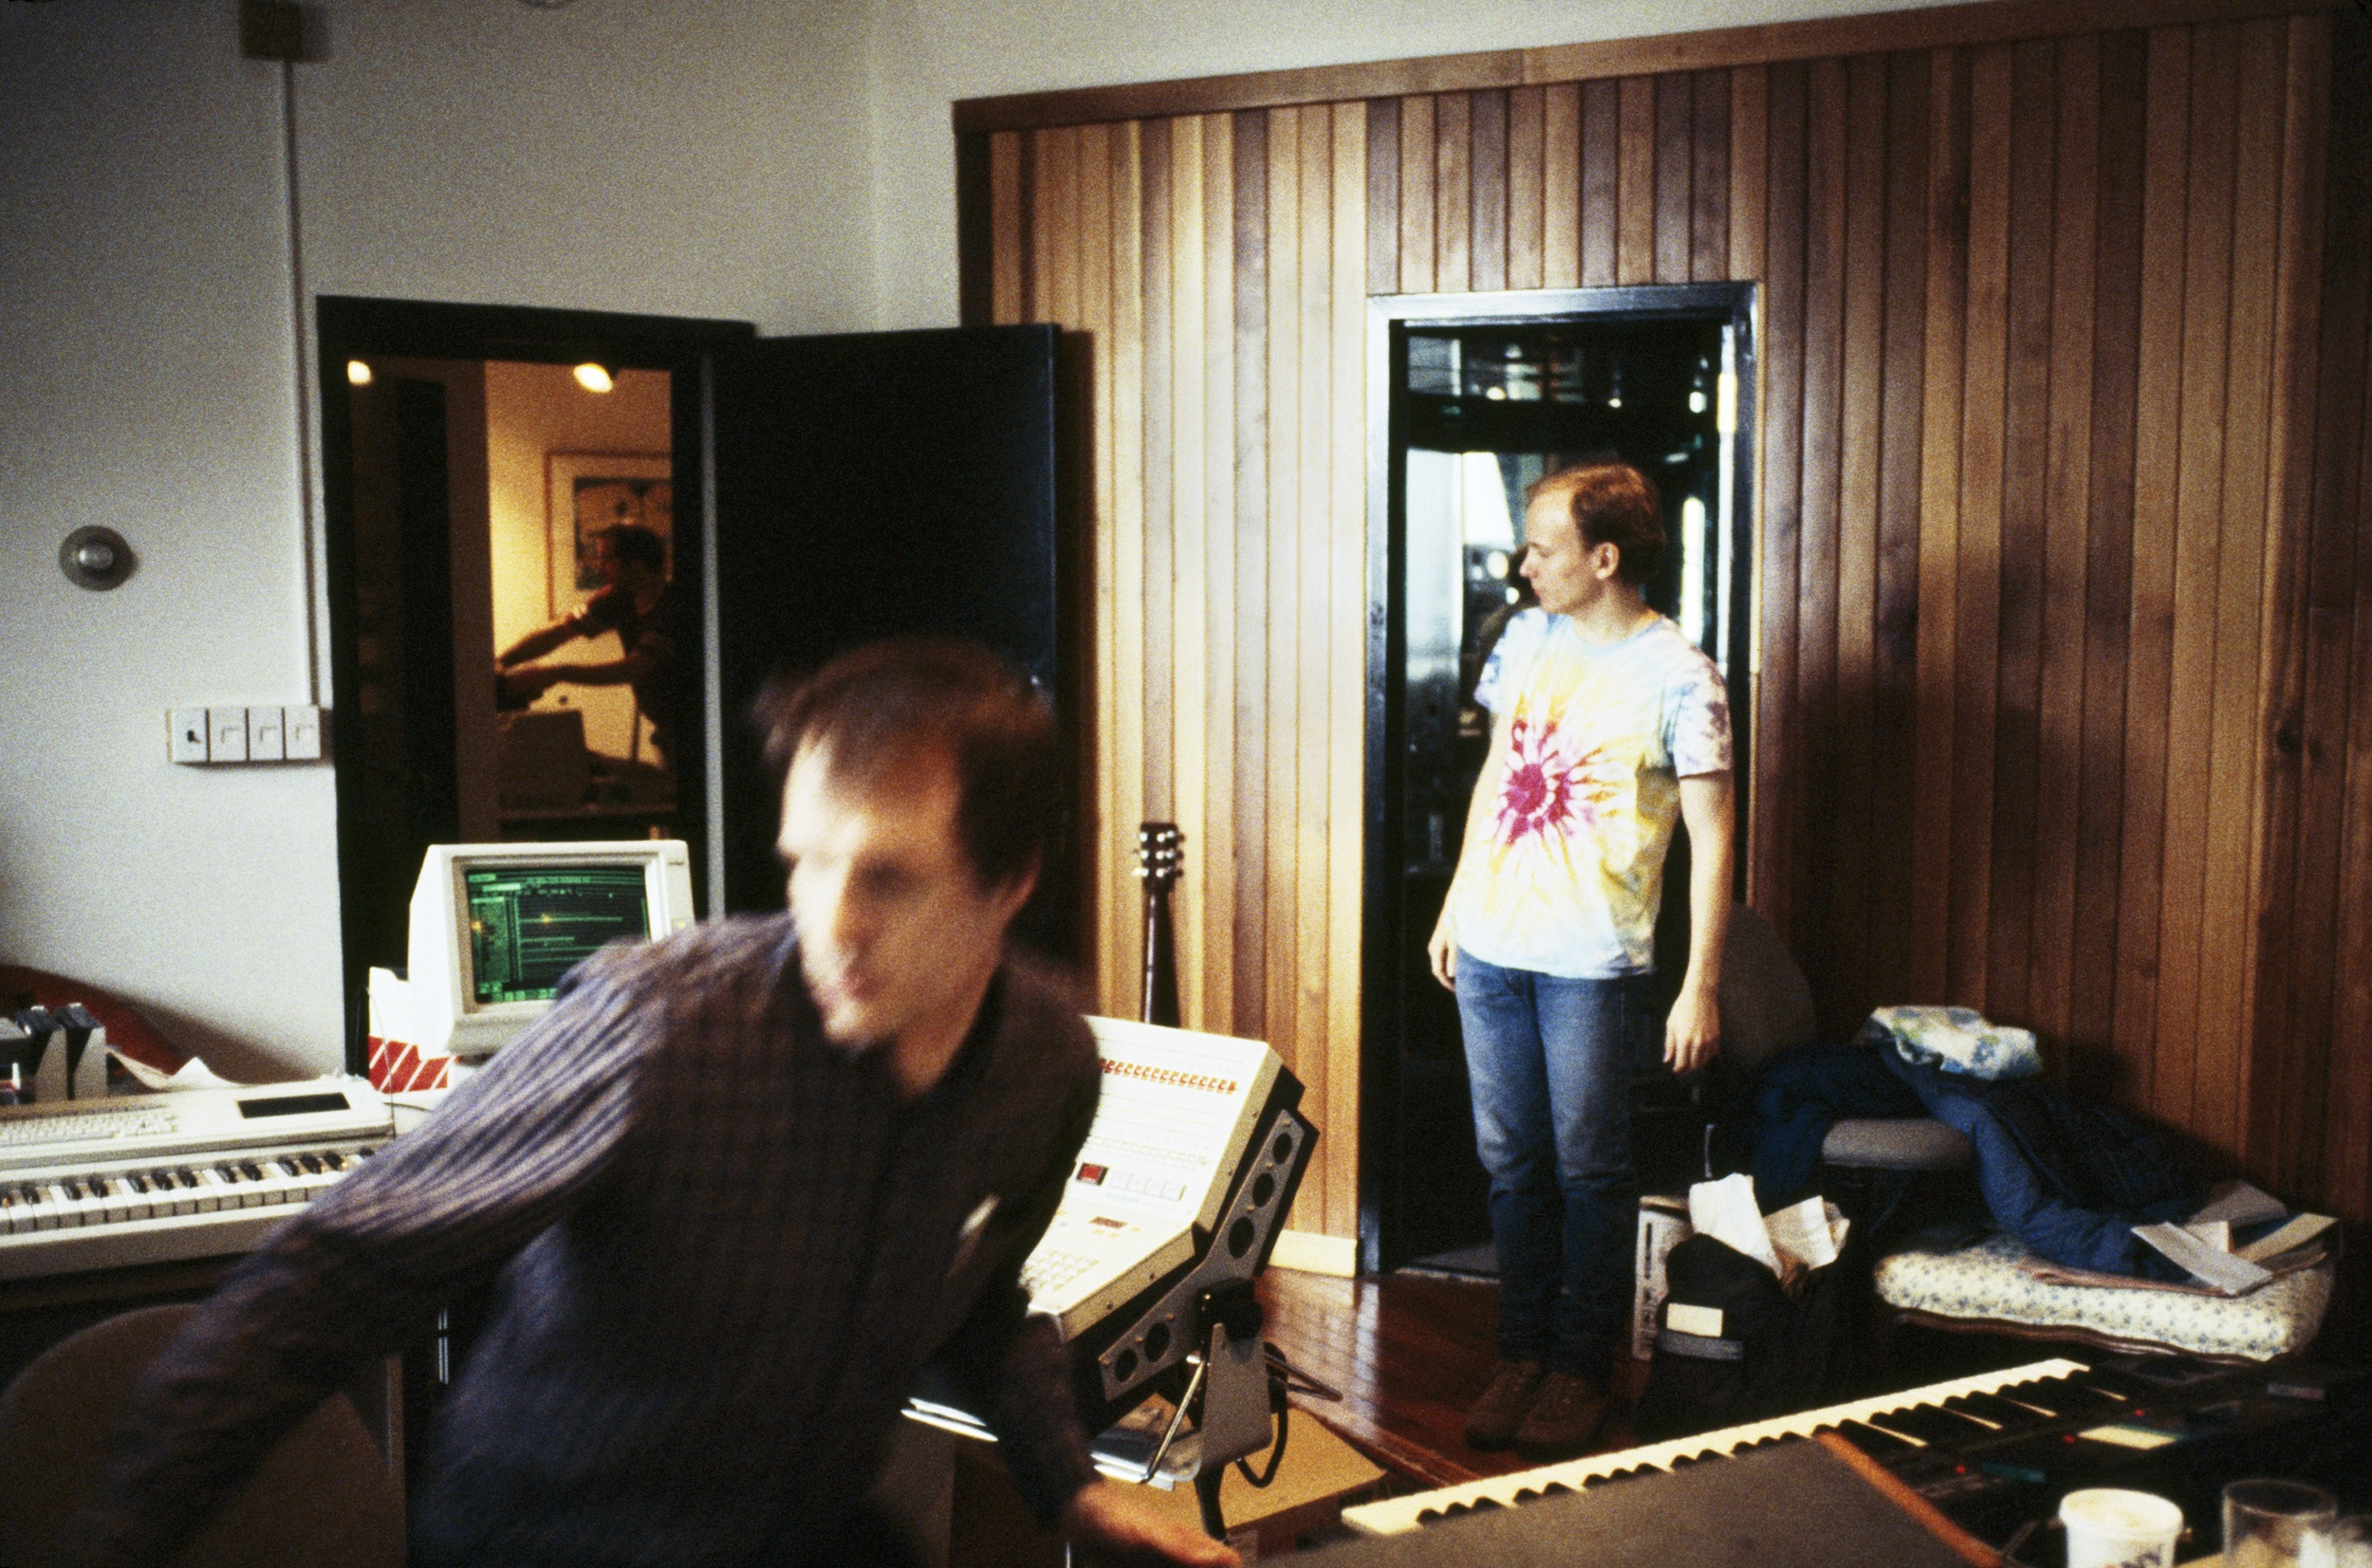 Arthur Russell recording music at Battery Sound in the early 1980's. Eric Muiderman, student of Peter Zummo and an apprentice of Arthur, stands on the right. Mark Freedman works in the adjoining room. Photograph by and courtesy of Peter Zummo.